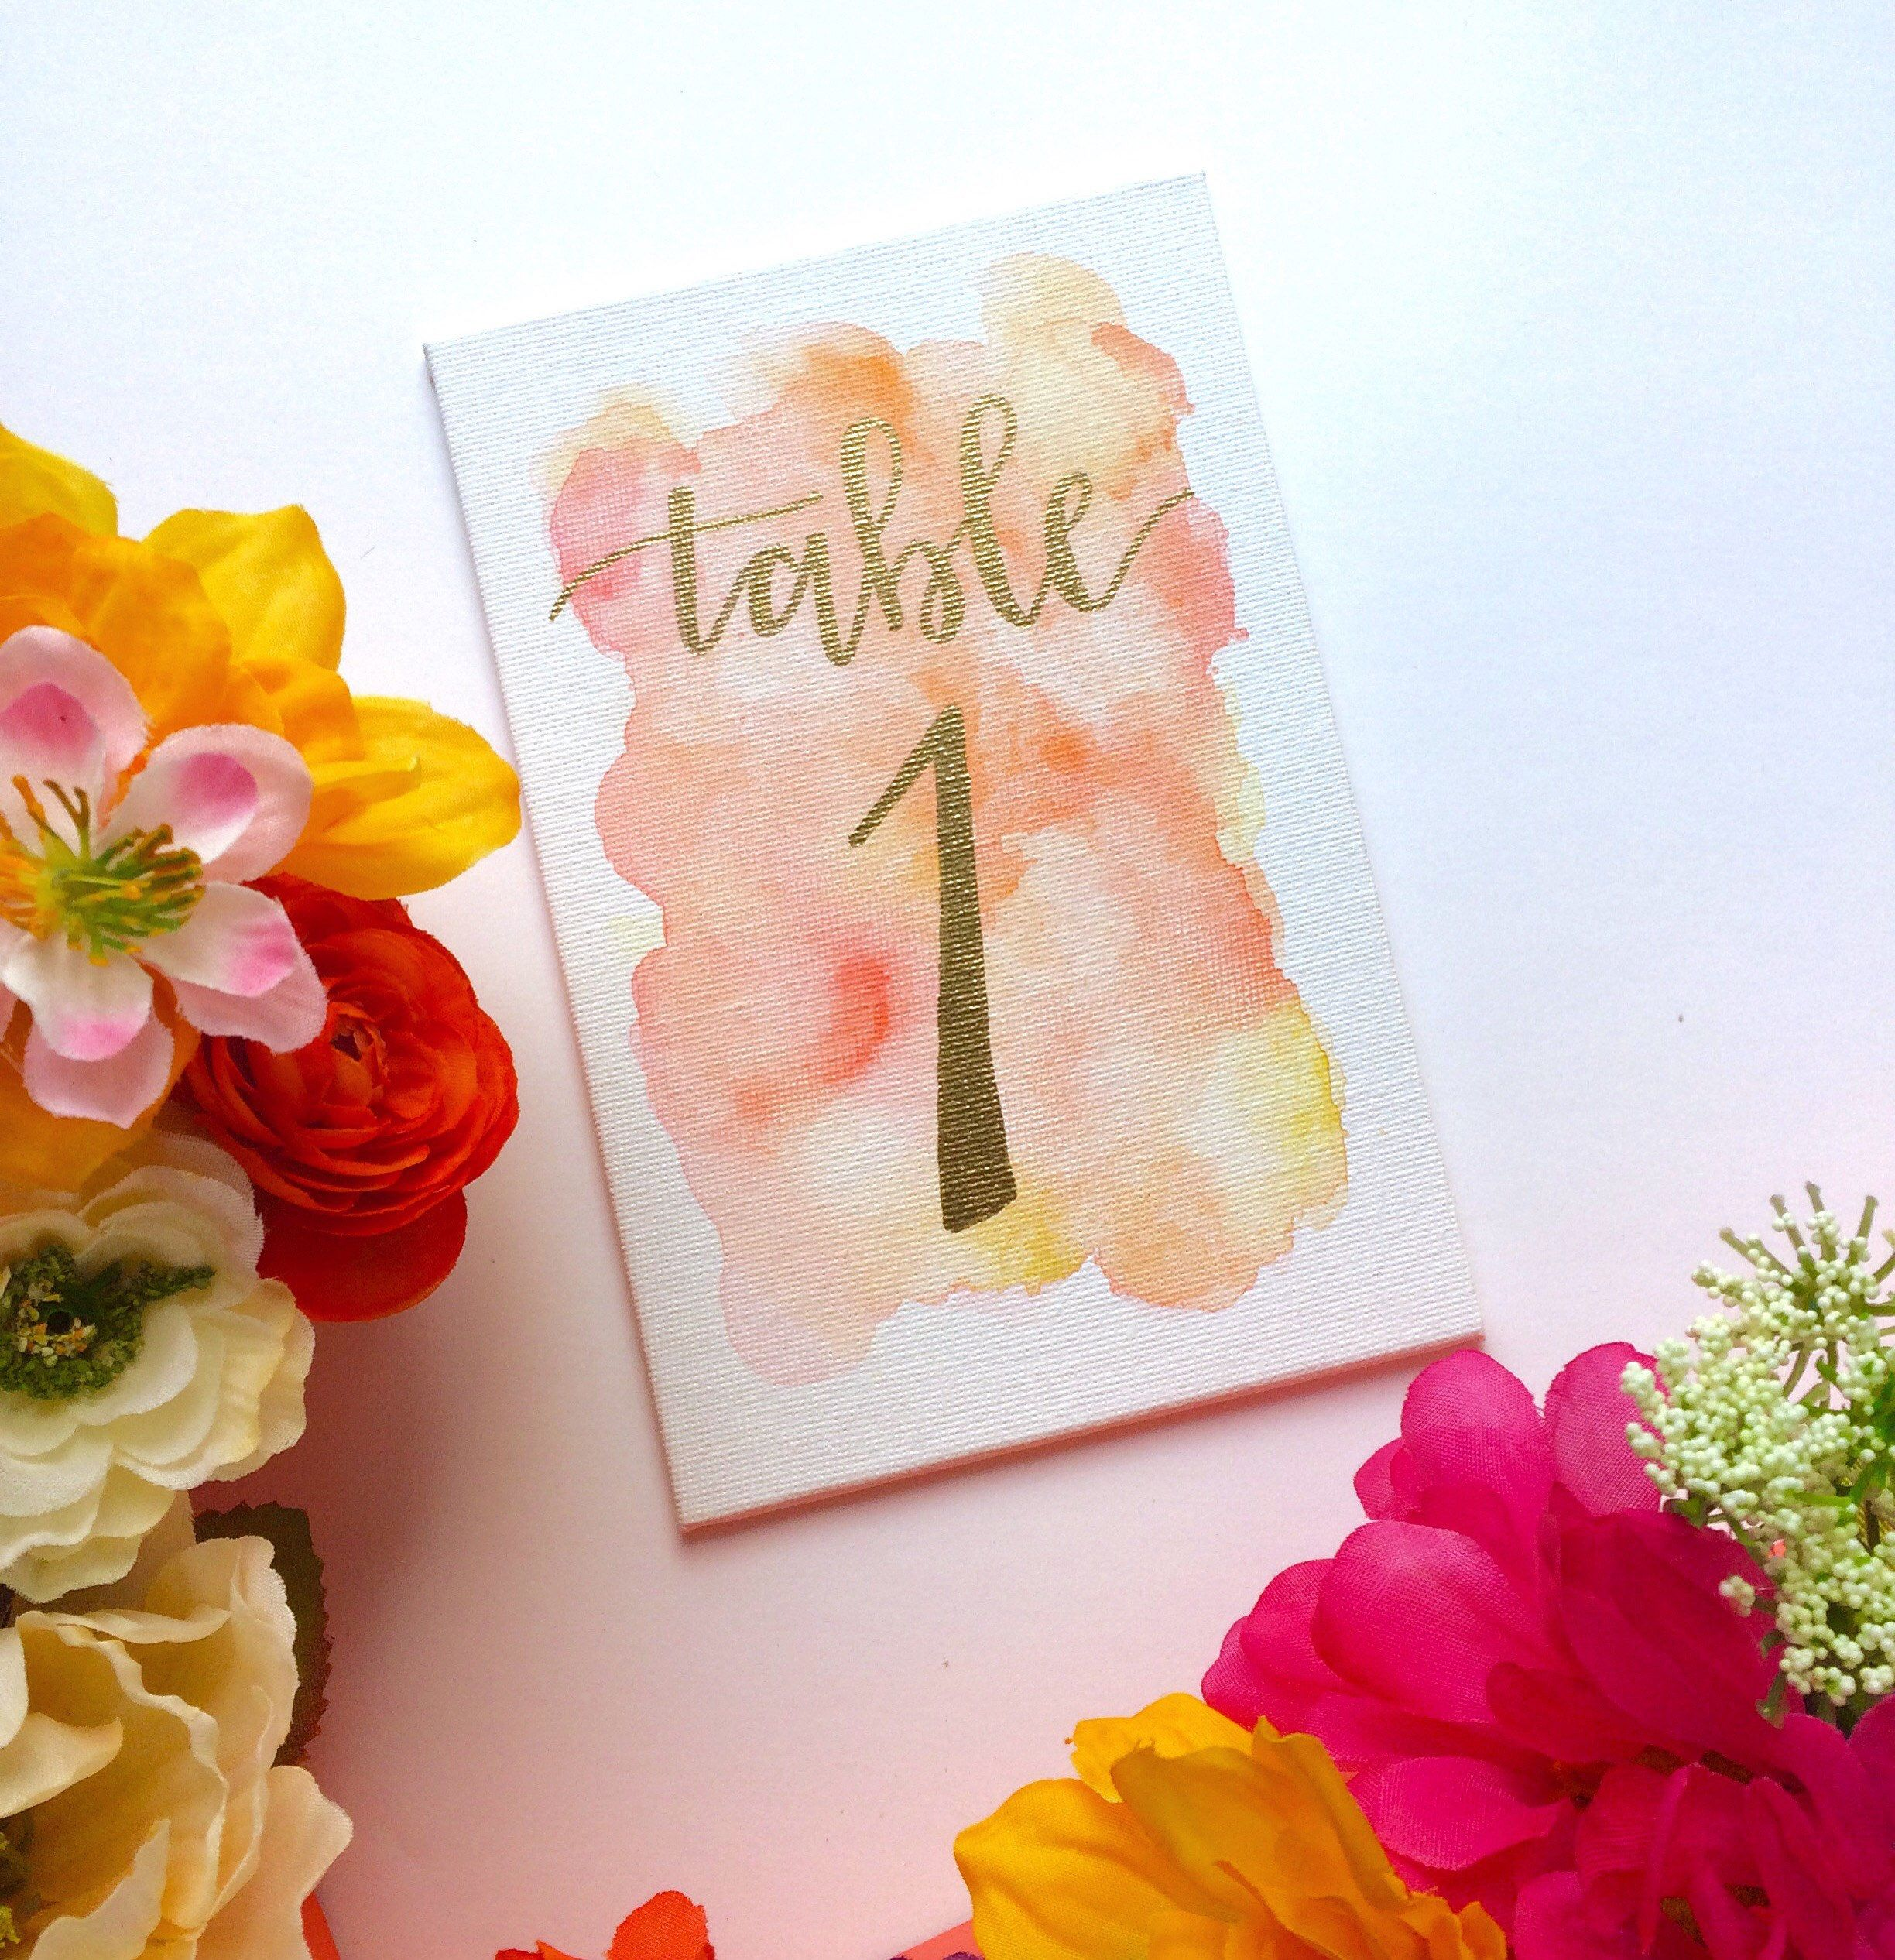 Watercolor wedding table numbers  Etsy shop https://www.etsy.com/listing/478399388/watercolor-wedding-table-numbers-panel